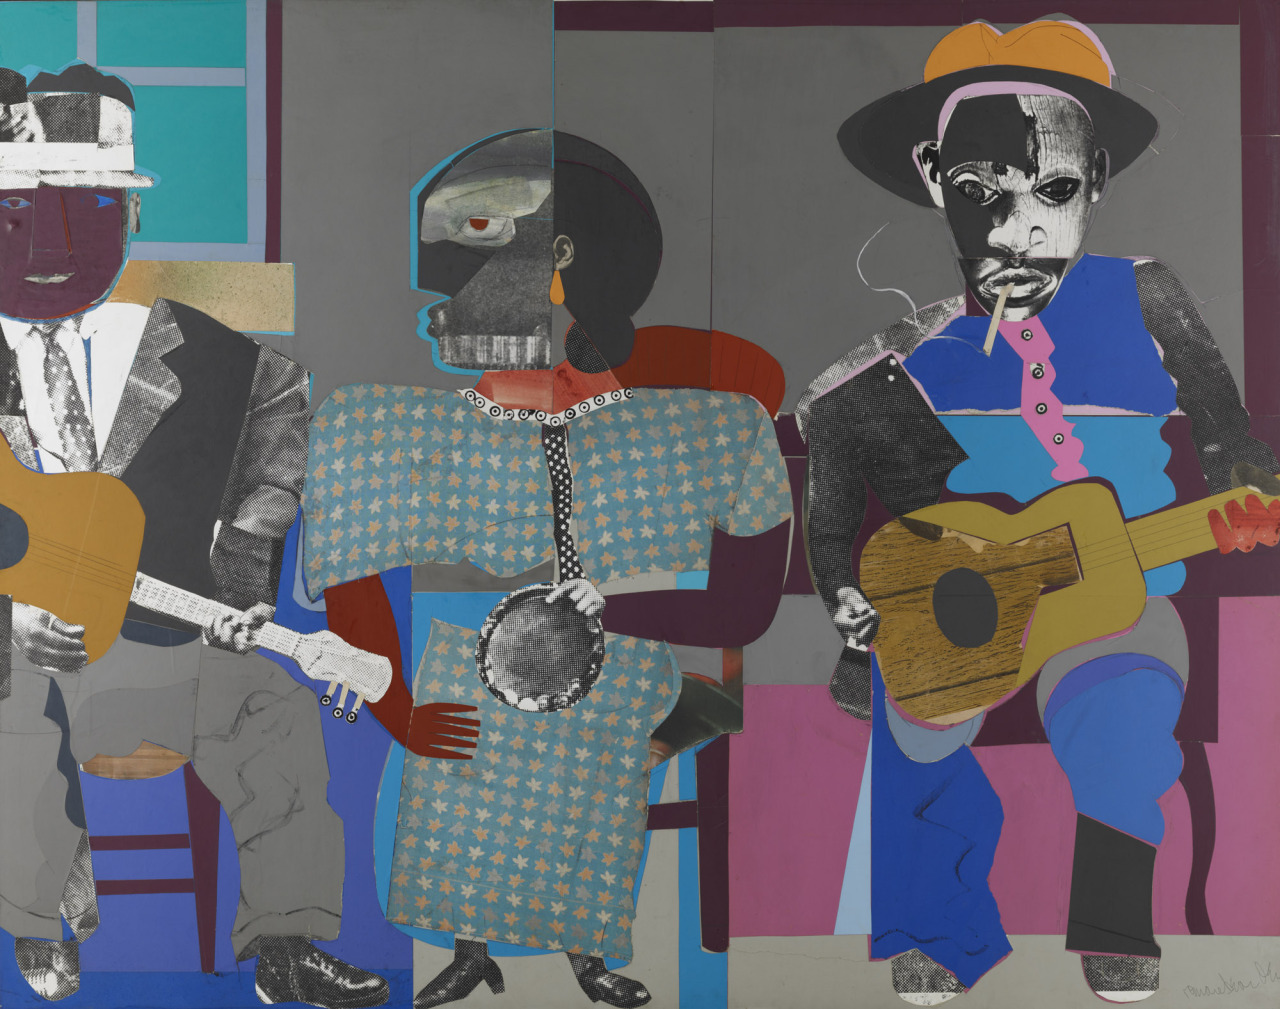 """thunderstruck9: """" Romare Bearden (American, 1911-1988), Soul Three, 1968. Paper and fabric collage on board, 111.76 x 140.97 cm. """""""